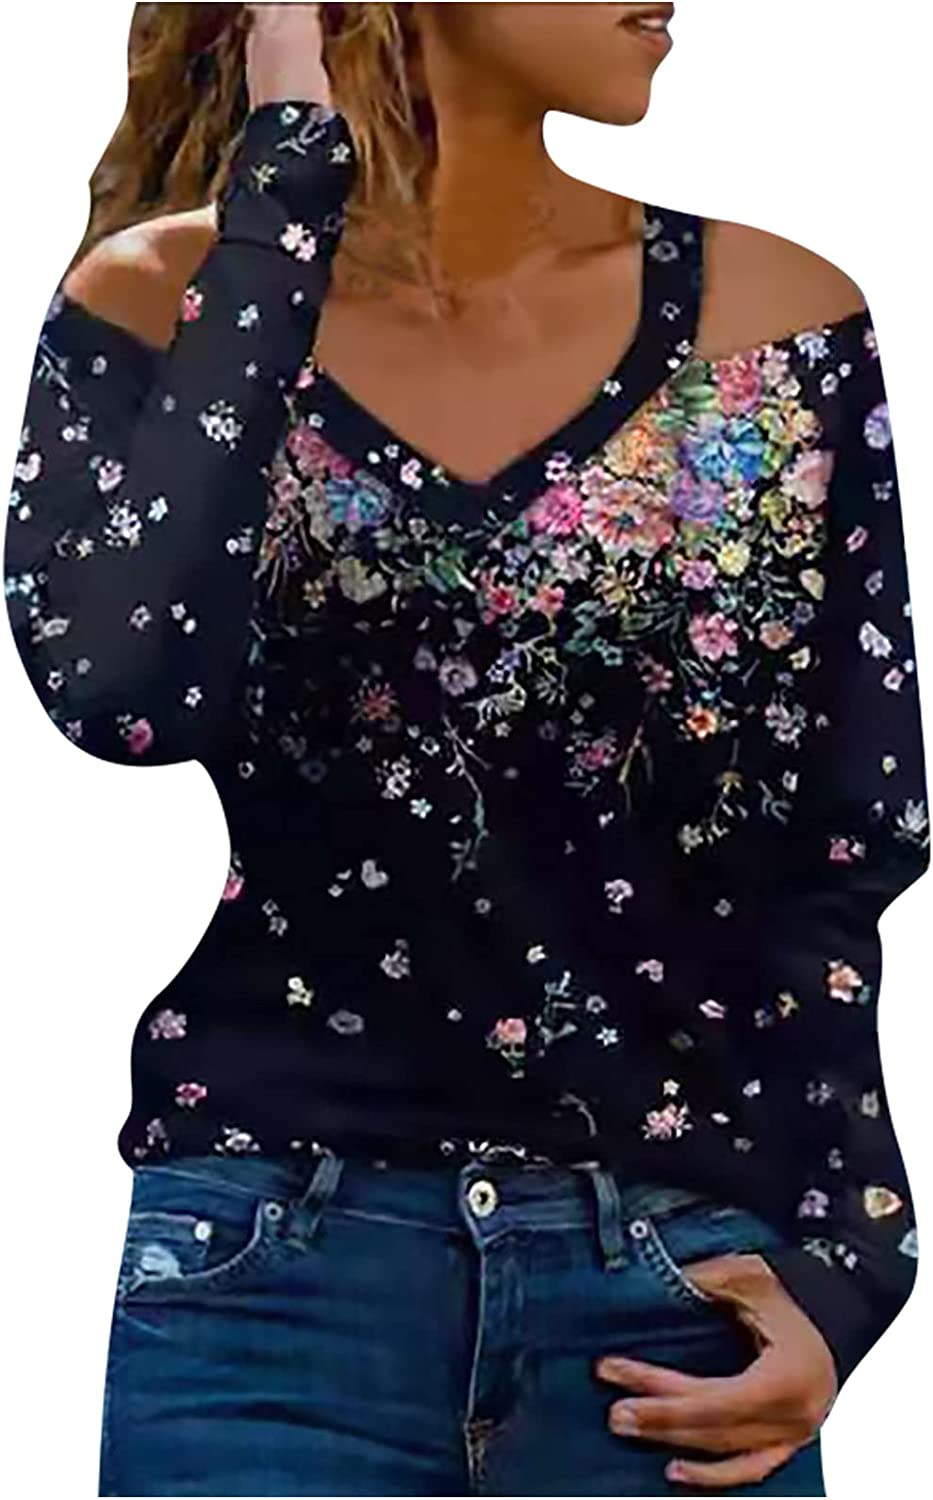 TIMIFIS Off The Shoulder Tops for Women Casual Long Sleeve Blouse Sexy V Neck Shirts Fashion Floral Print Sweatshirt